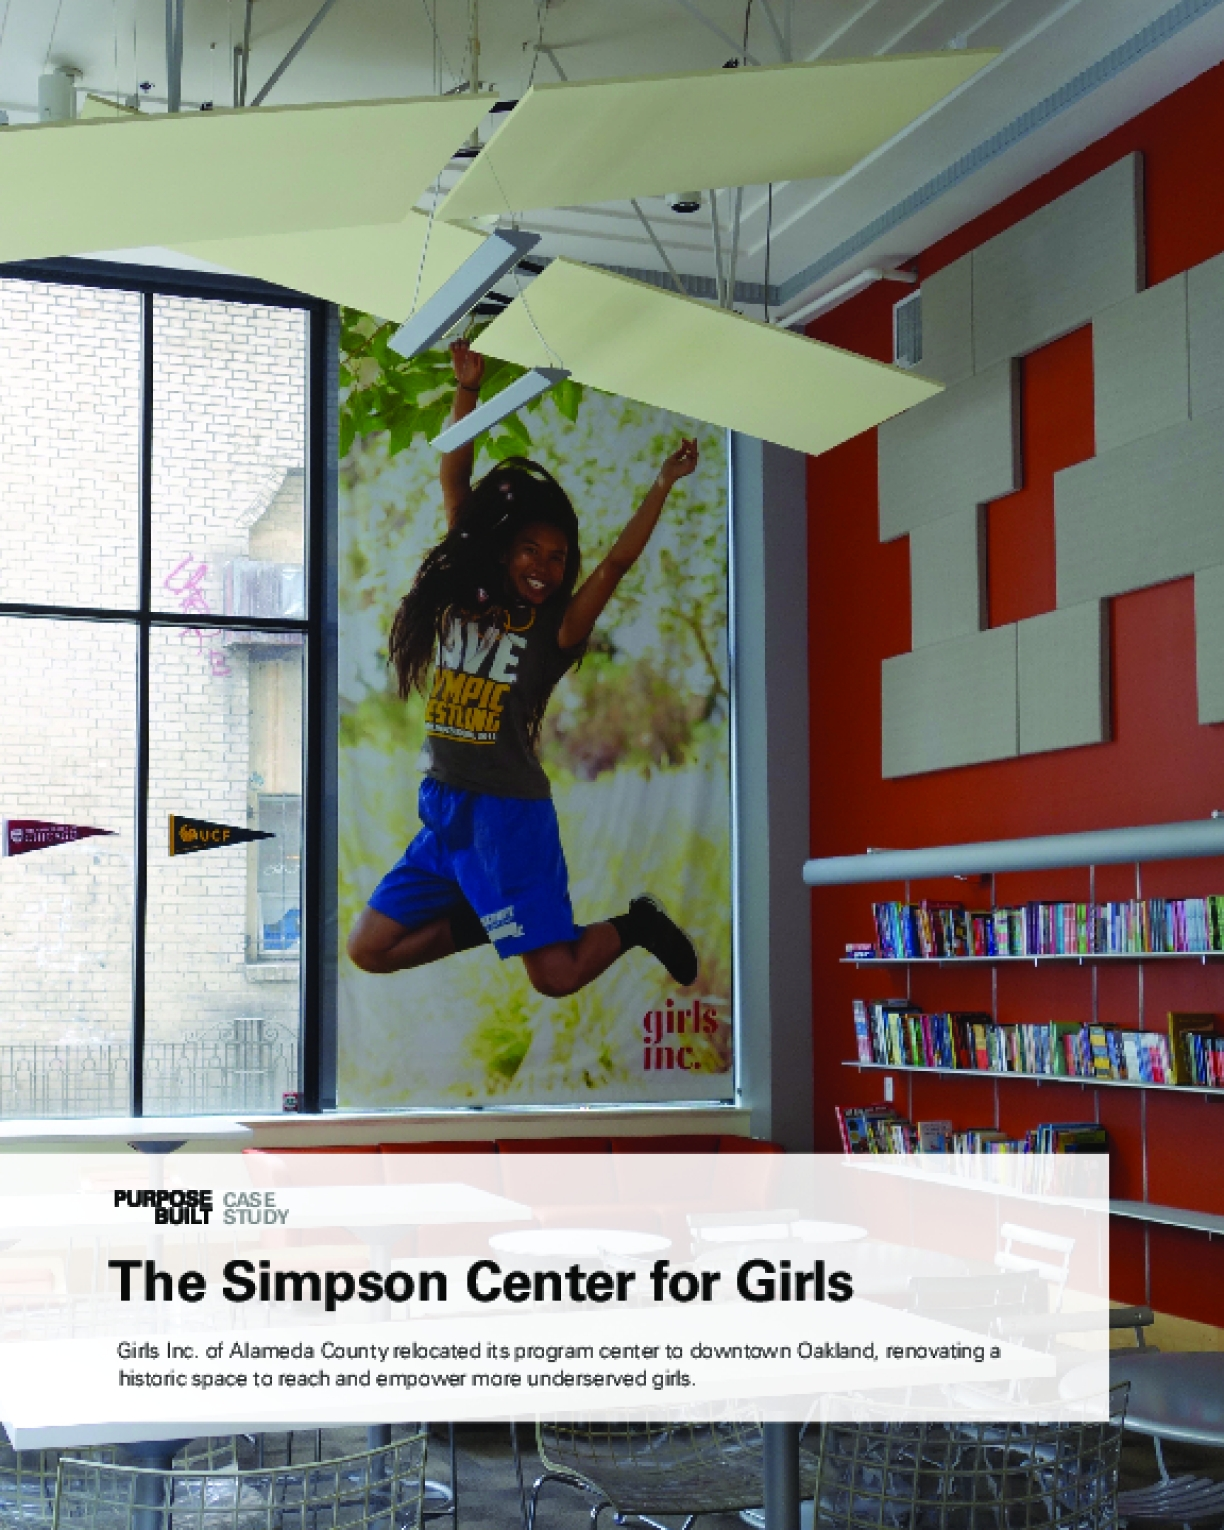 Purpose Built Case Study: The Simpson Center for Girls